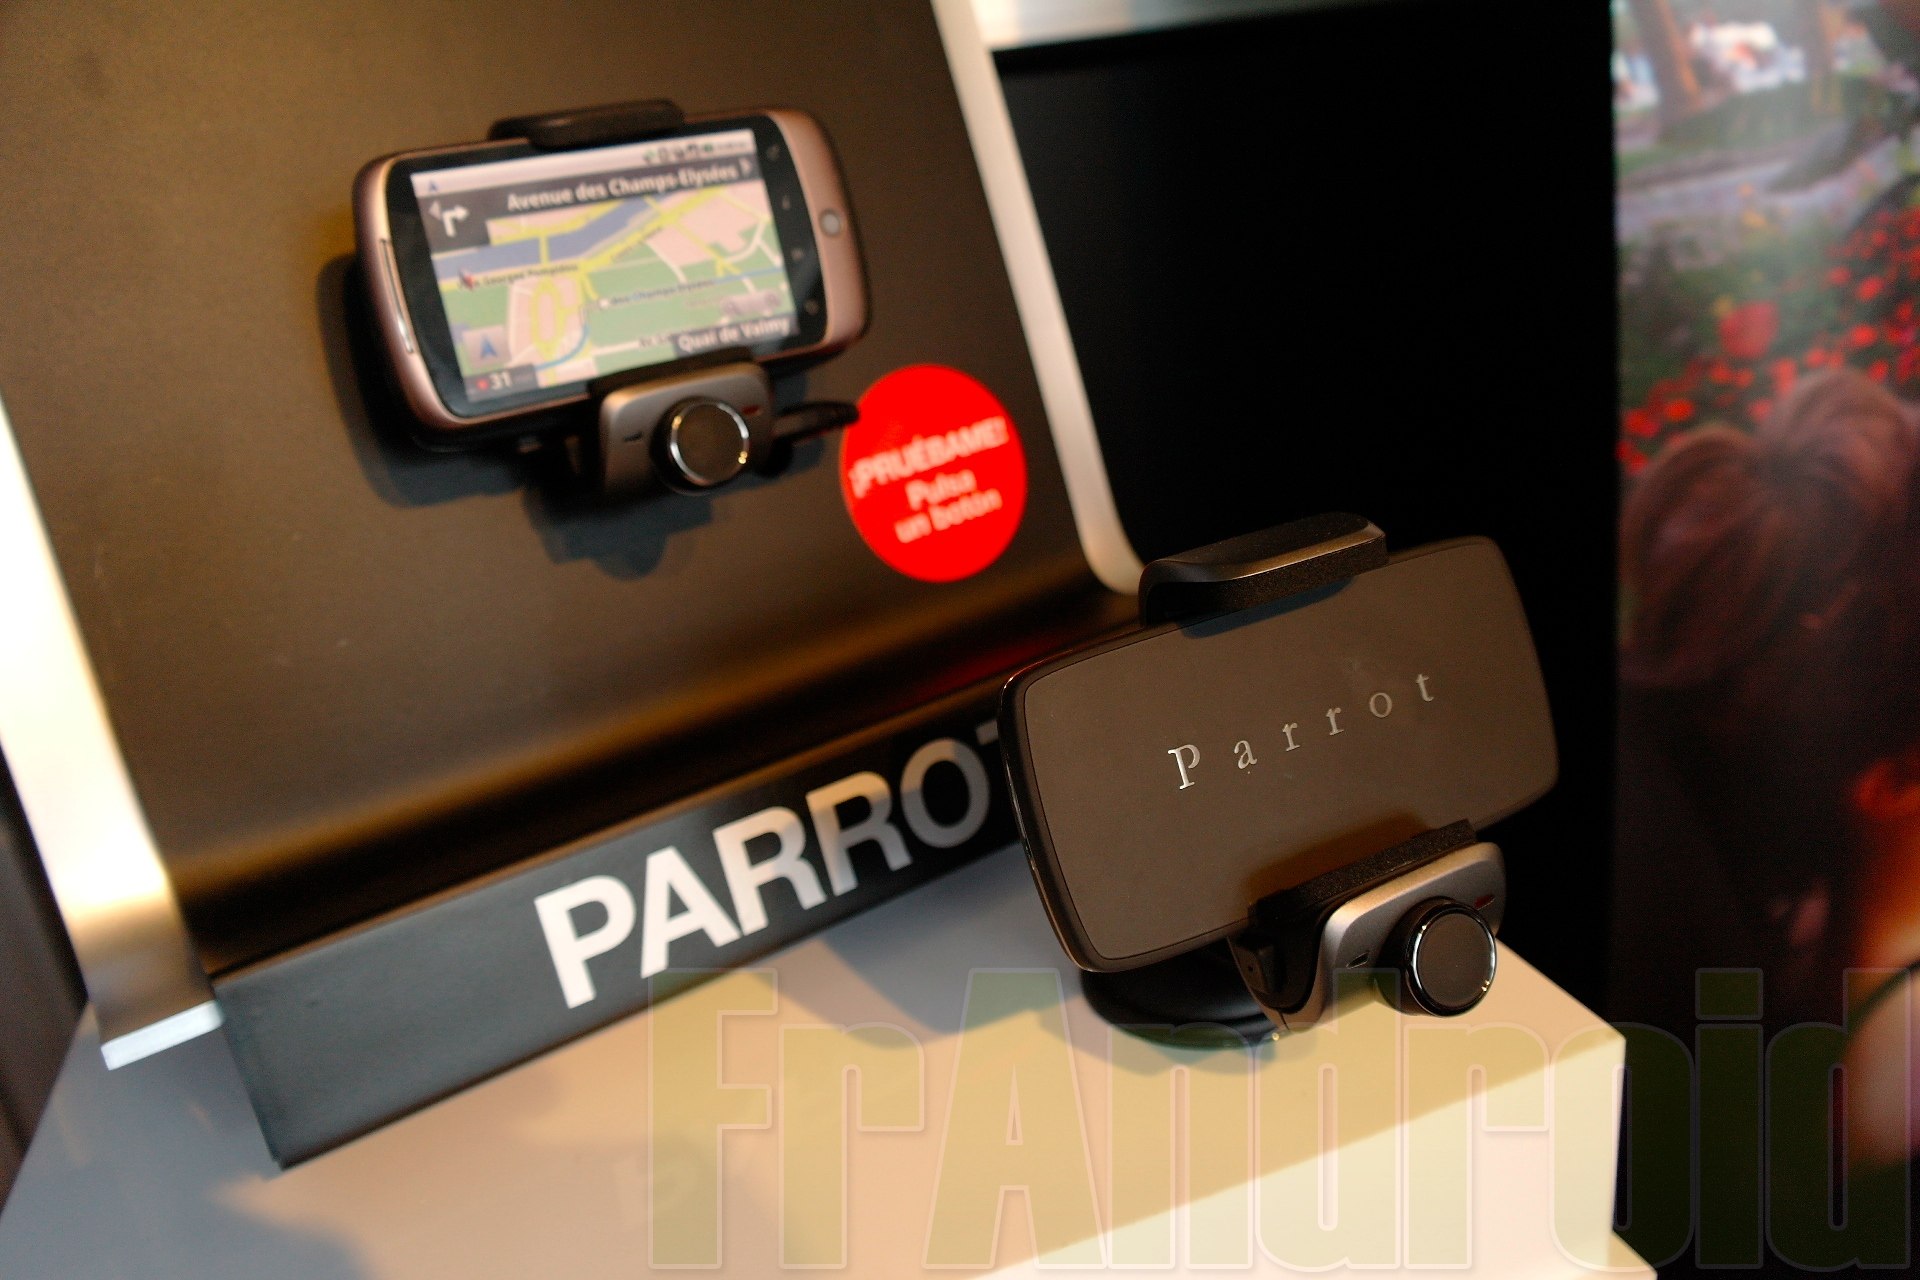 Kit Manos Libres Parrot Présentation Du Parrot Minikit Smart Un Support Mains